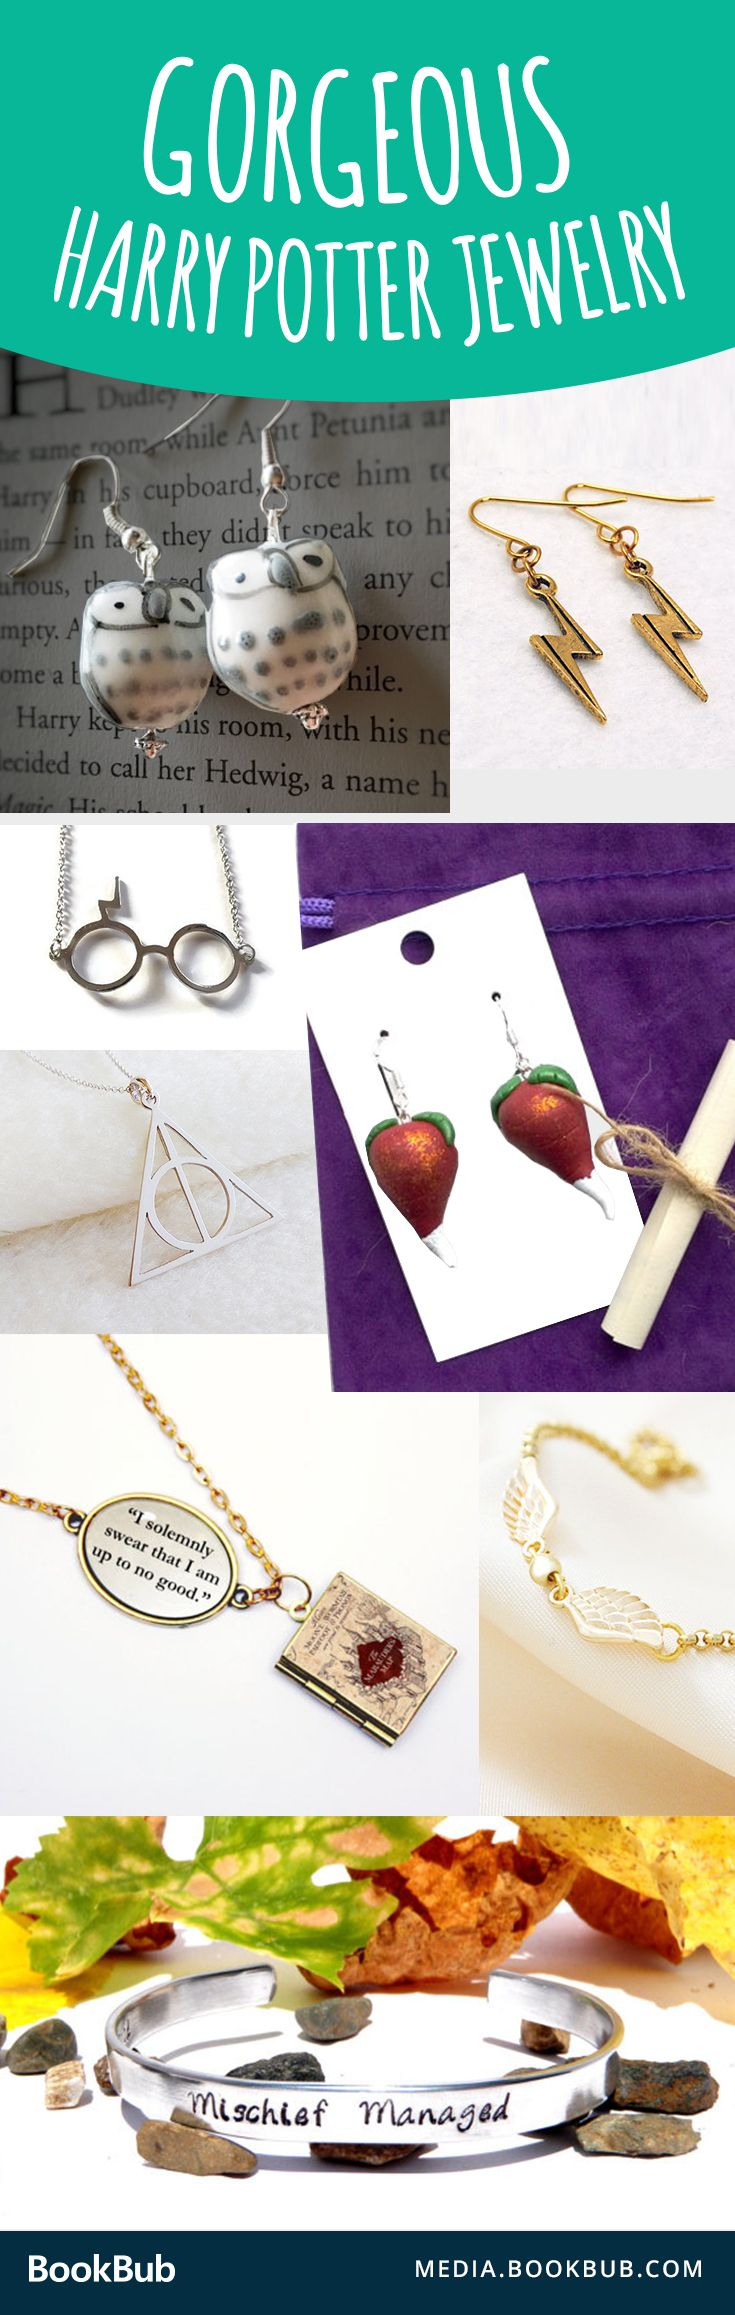 These would make creative Christmas gift ideas for a Harry Potter-loving best friend or girlfriend.